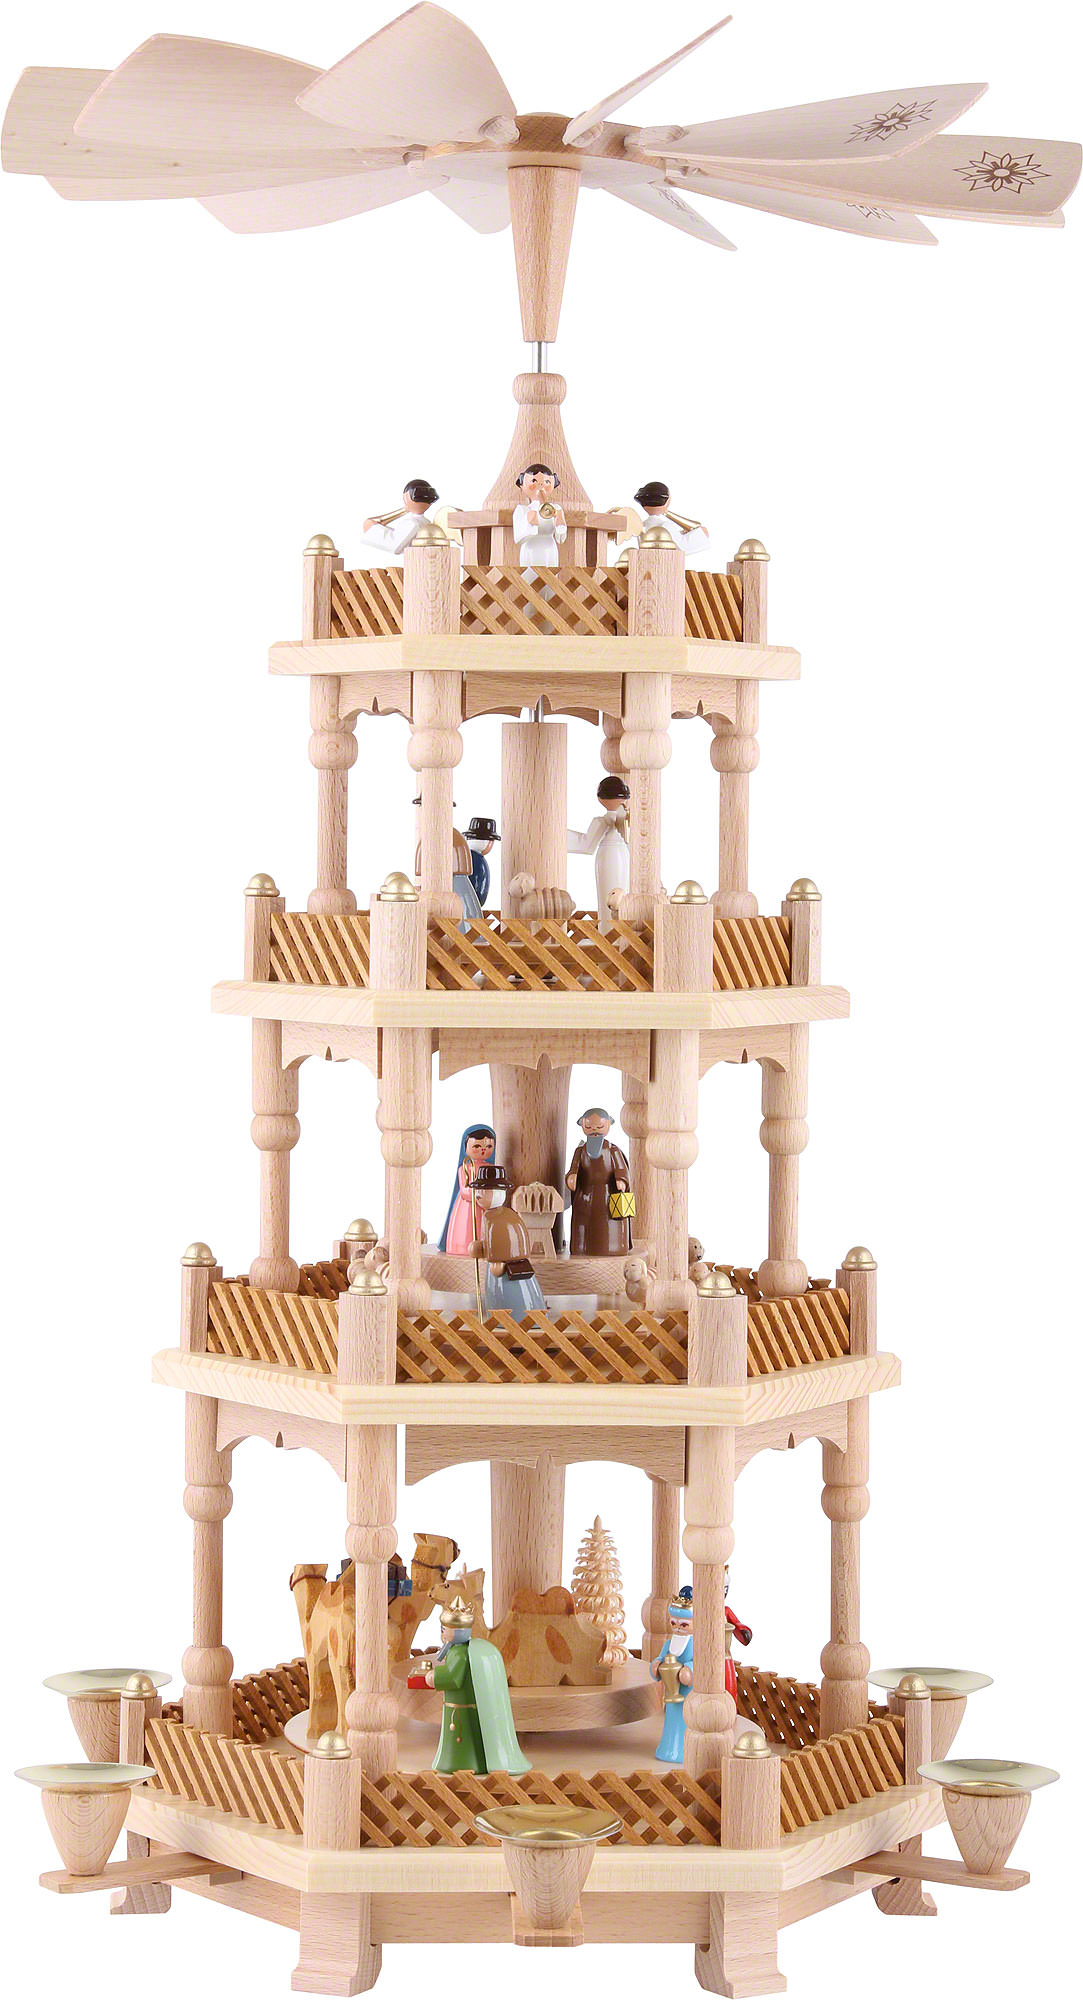 4 tier pyramid nativity scene painted 54 cm 21in by richard gl sser. Black Bedroom Furniture Sets. Home Design Ideas